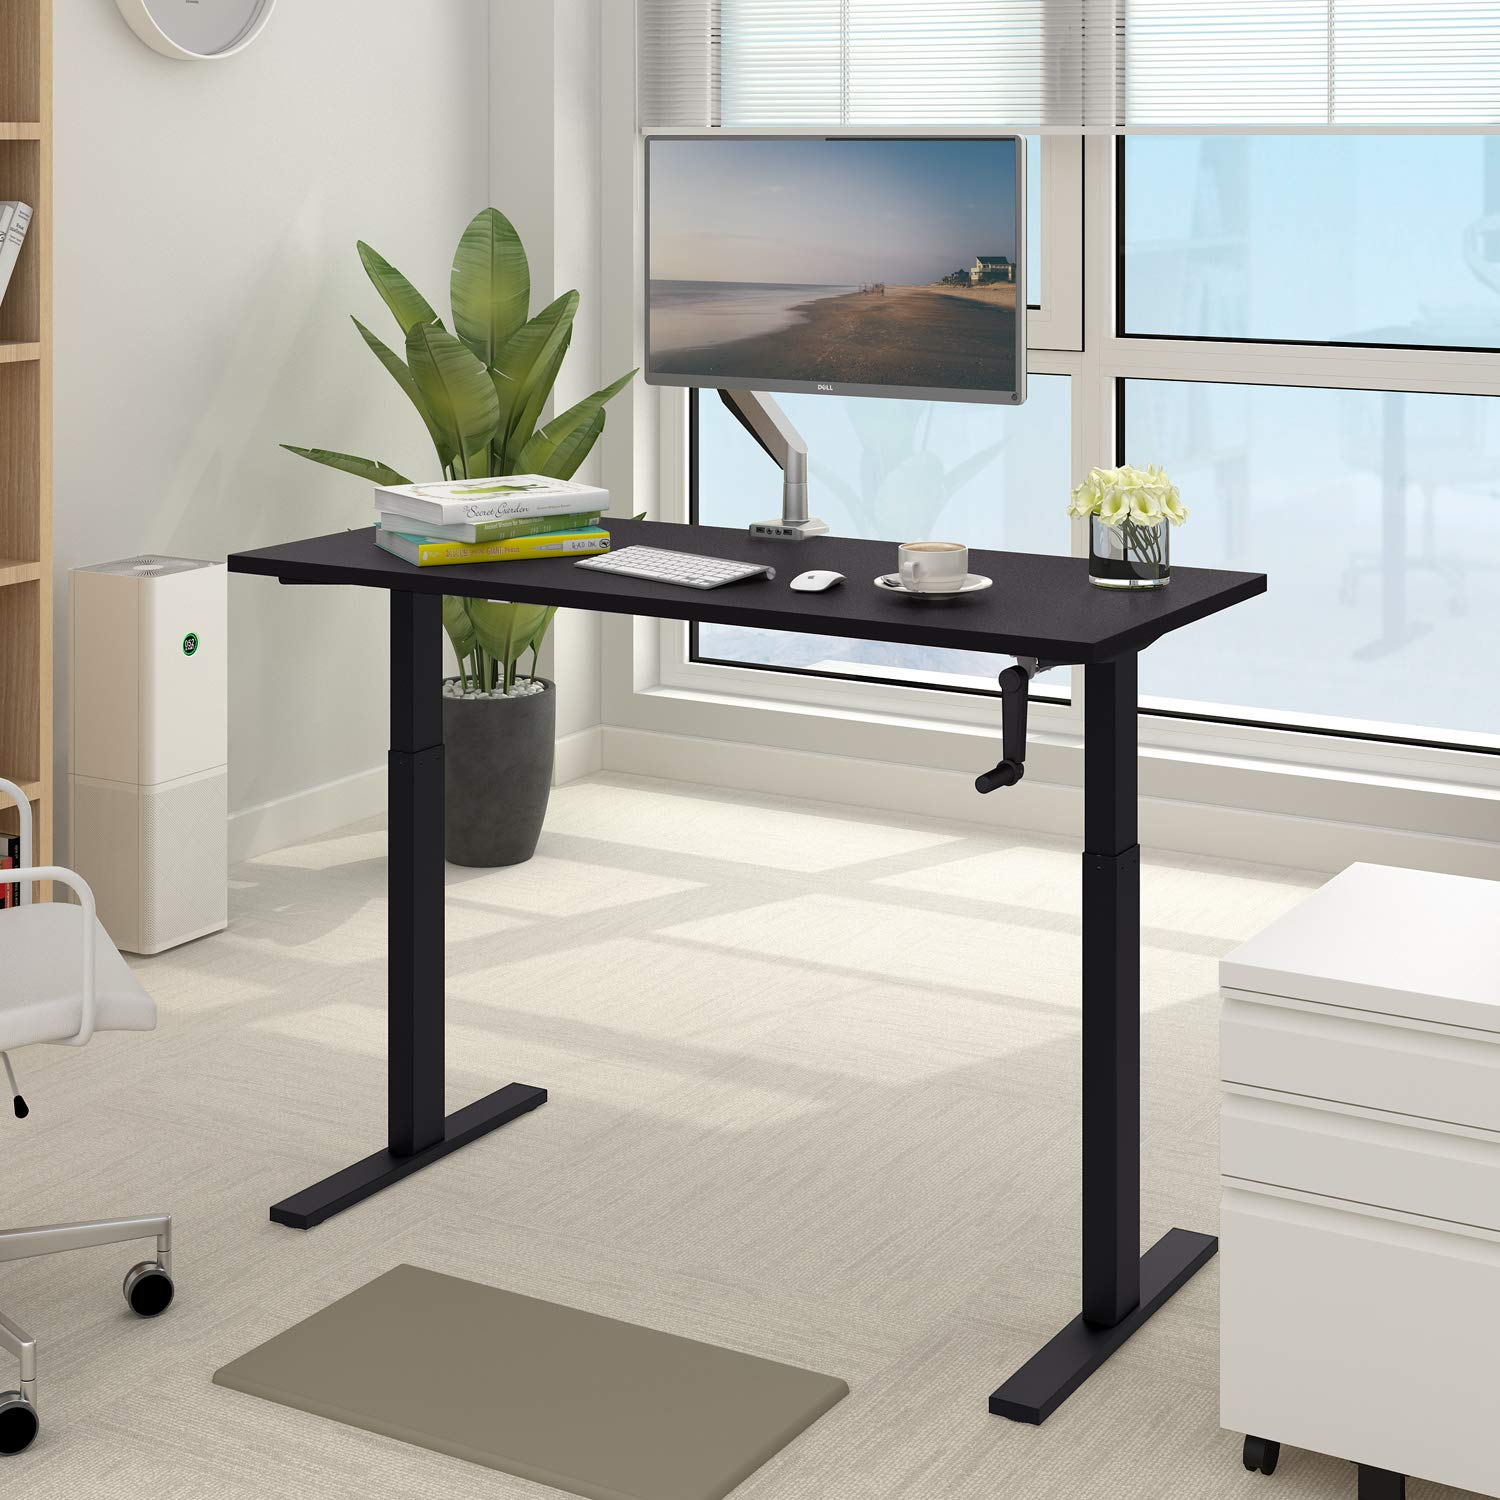 DEVAISE Standing Desk – 55 Adjustable Sit to Stand Up Desk with Crank Handle, Black